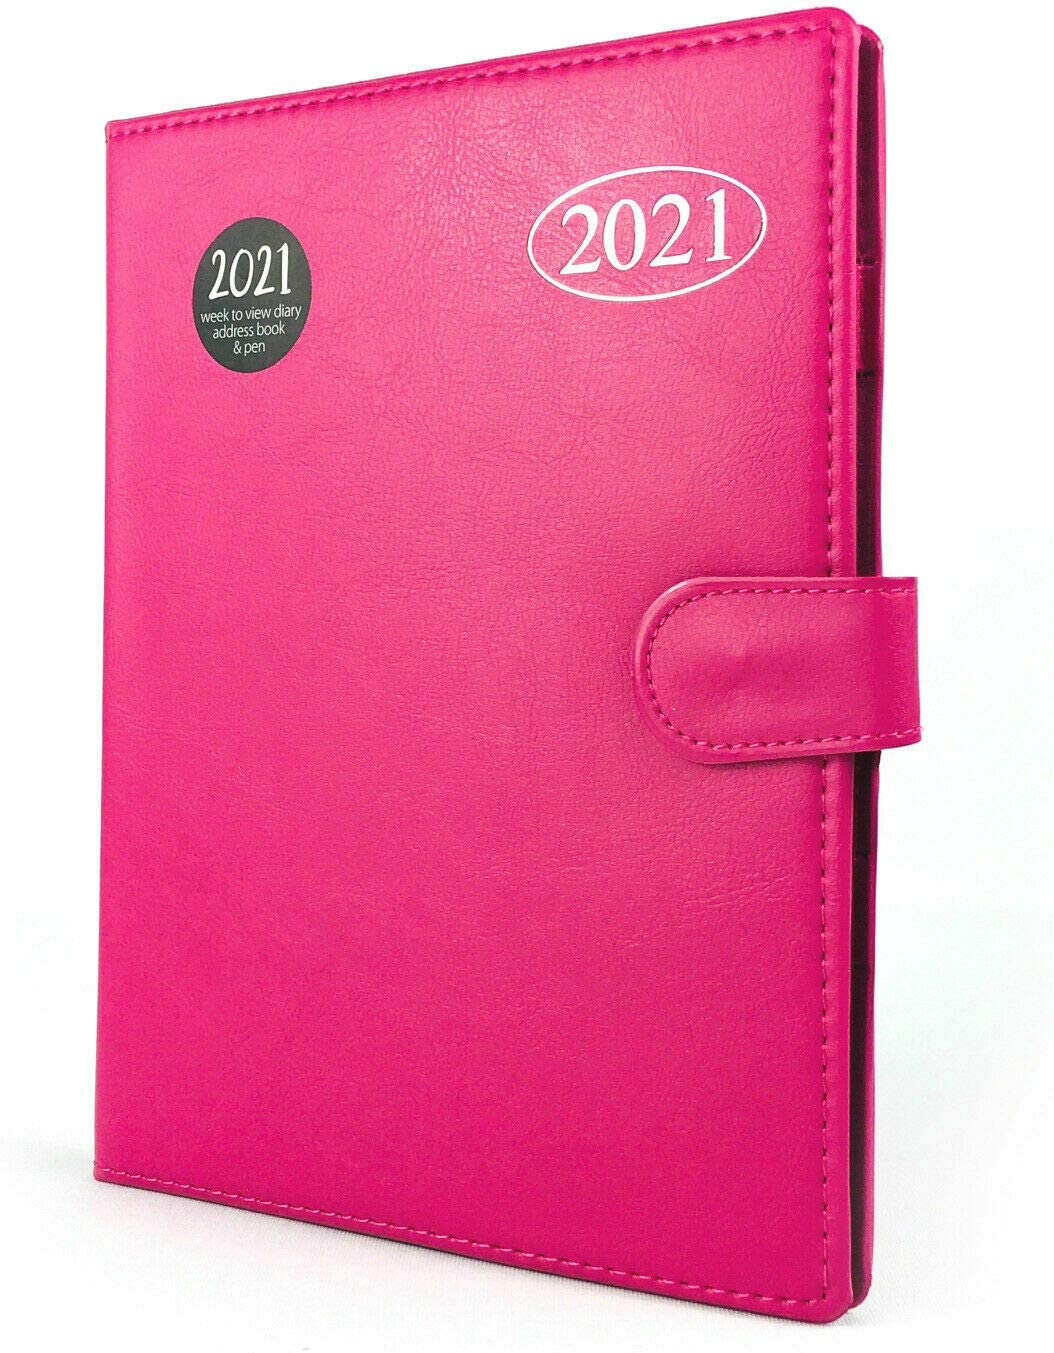 Teal 2021 A5 Week to View Organiser WTV Diary Address Book /& Pen Ladies Gents Gift